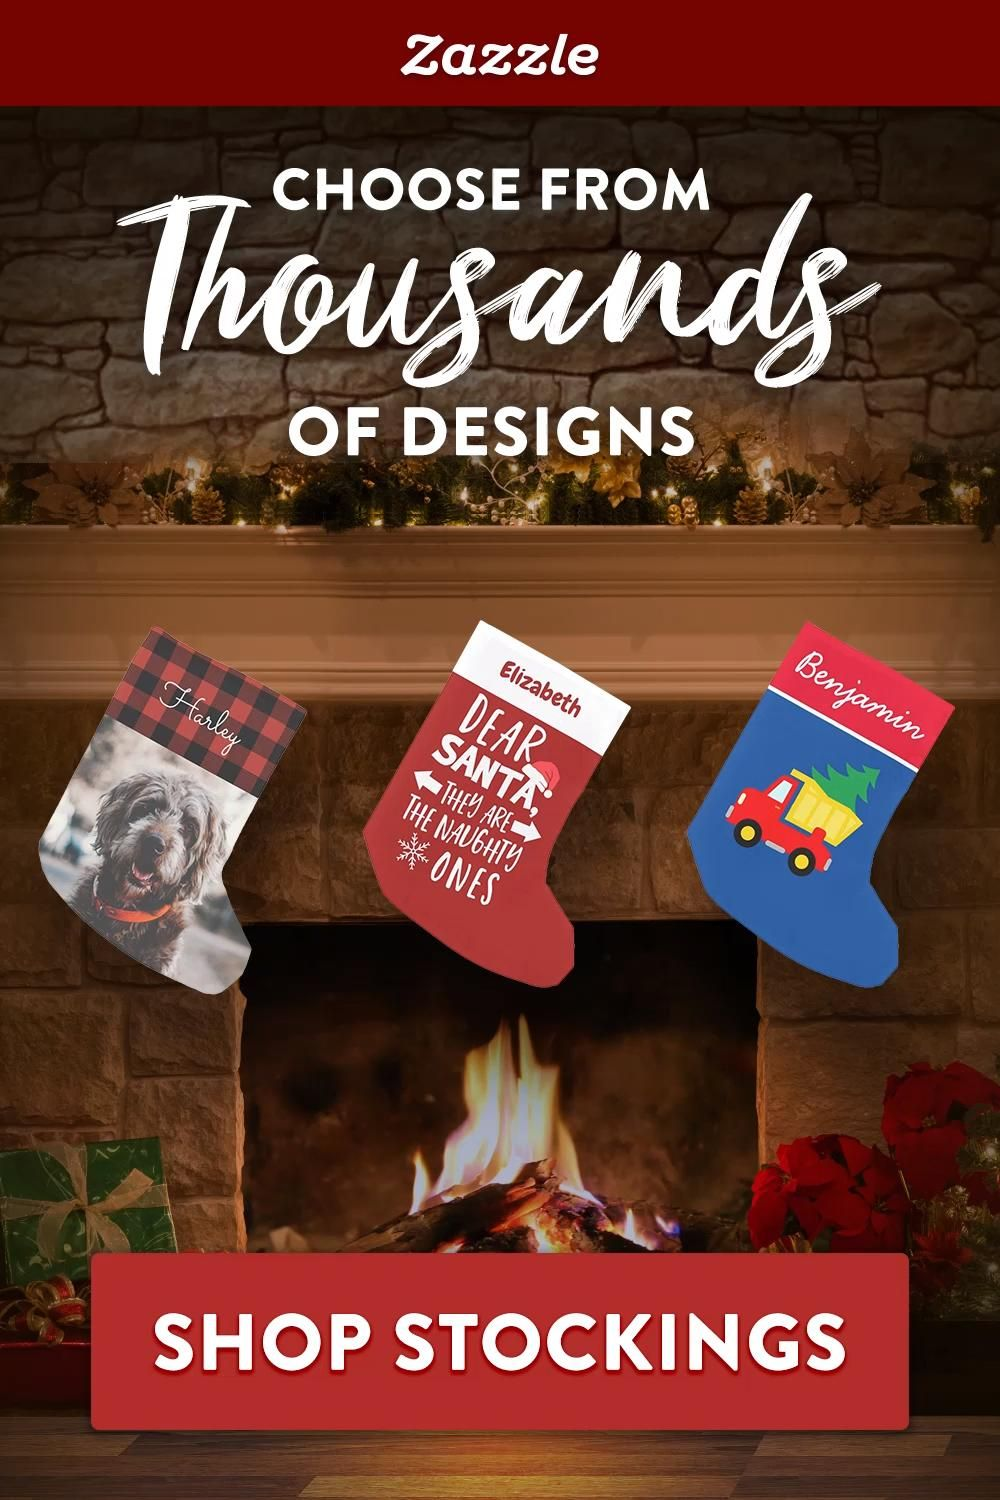 Get in the holiday spirit with custom stockings. Choose from thousands of designs for kids, adults, and pets. Shop Zazzle for all your holiday needs including holiday cards, ornaments, home decor, gifts and more.